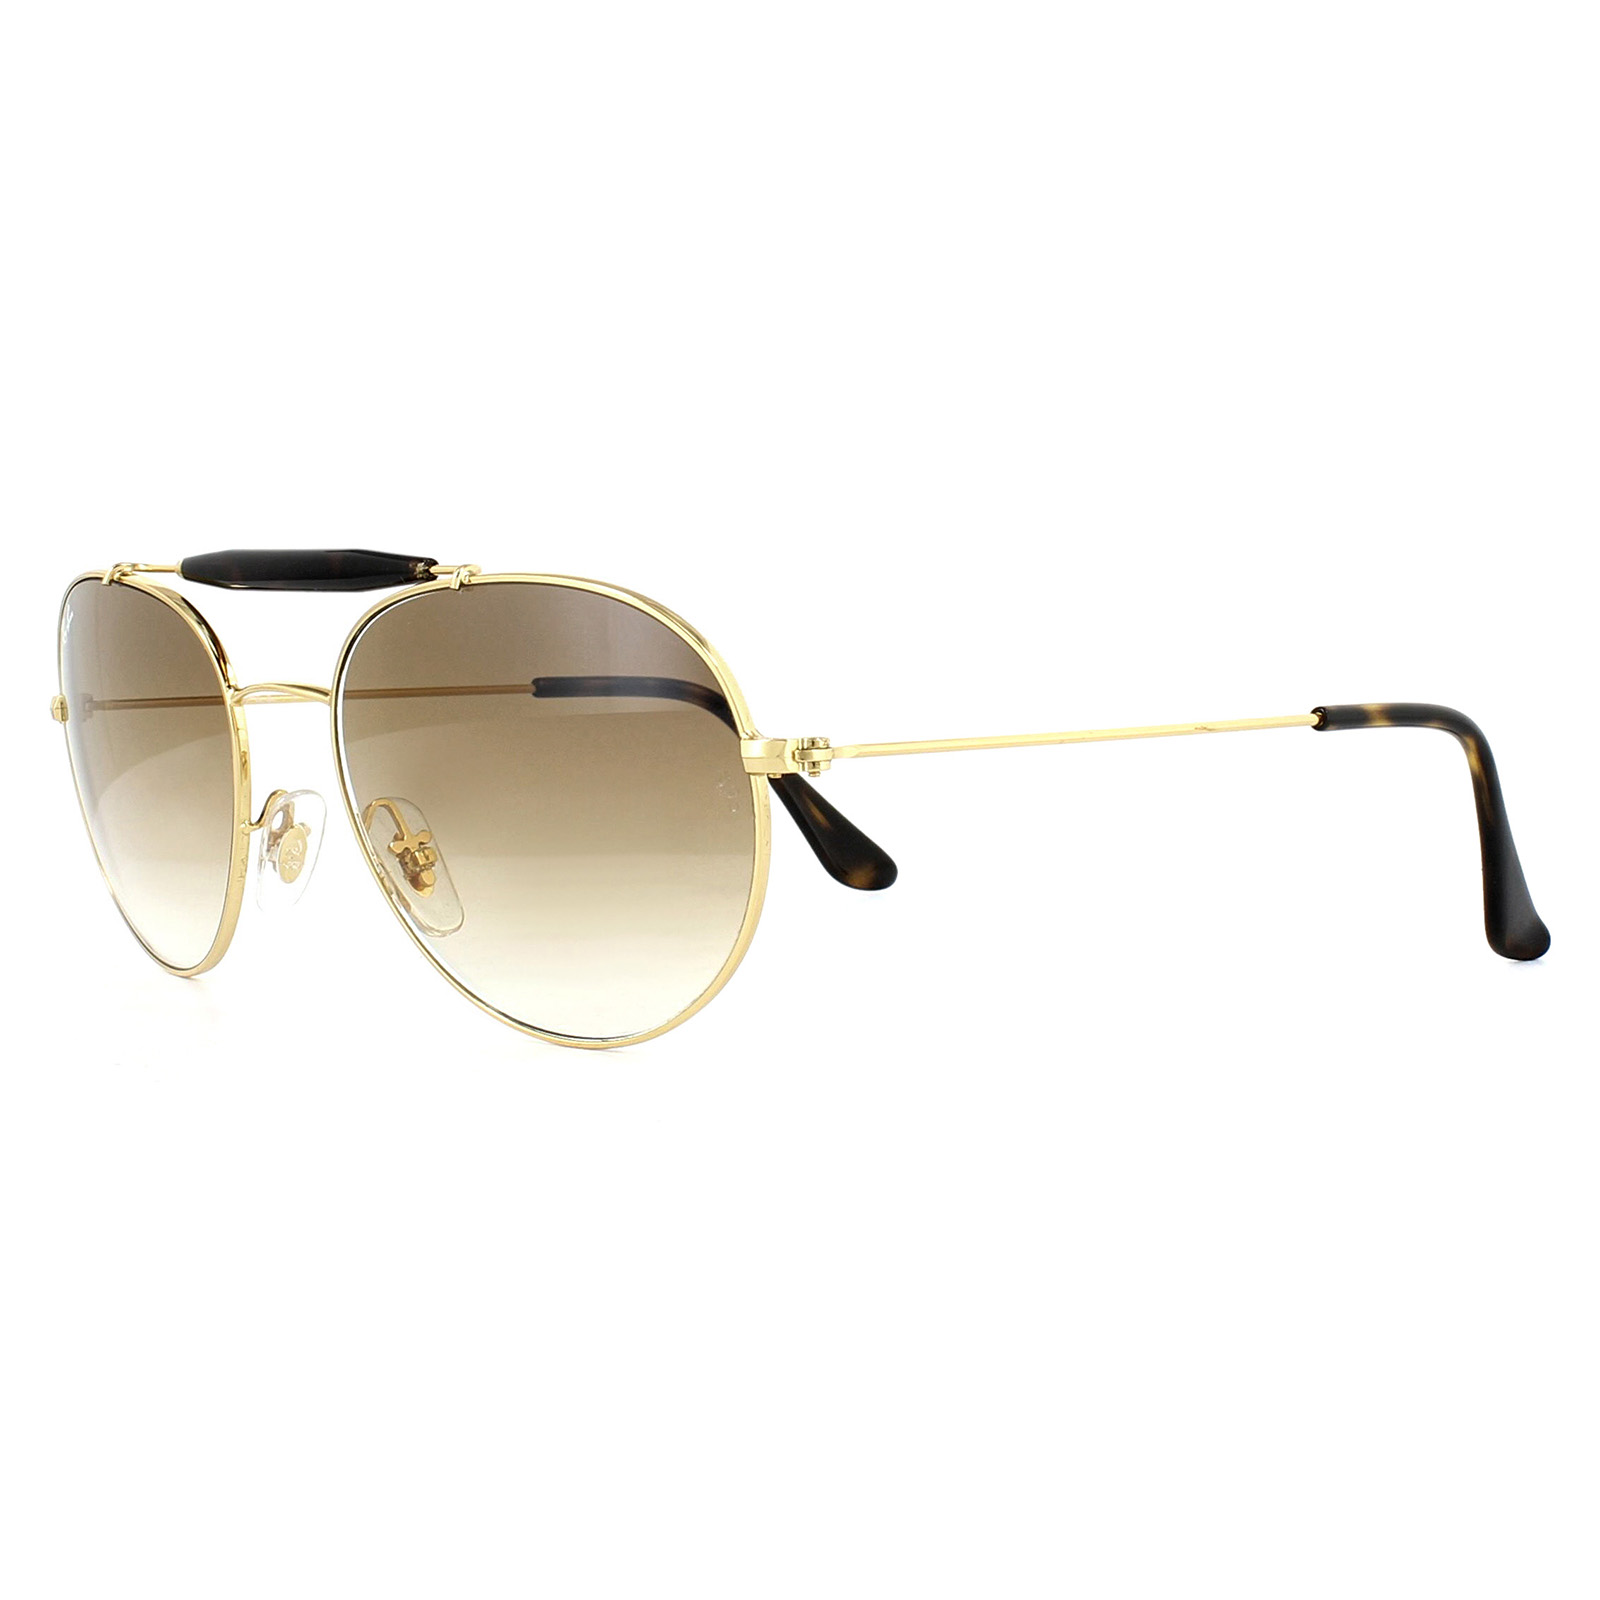 1d38c2e5350 Sentinel Ray-Ban Sunglasses RB3540 001 51 Gold Light Brown Gradient